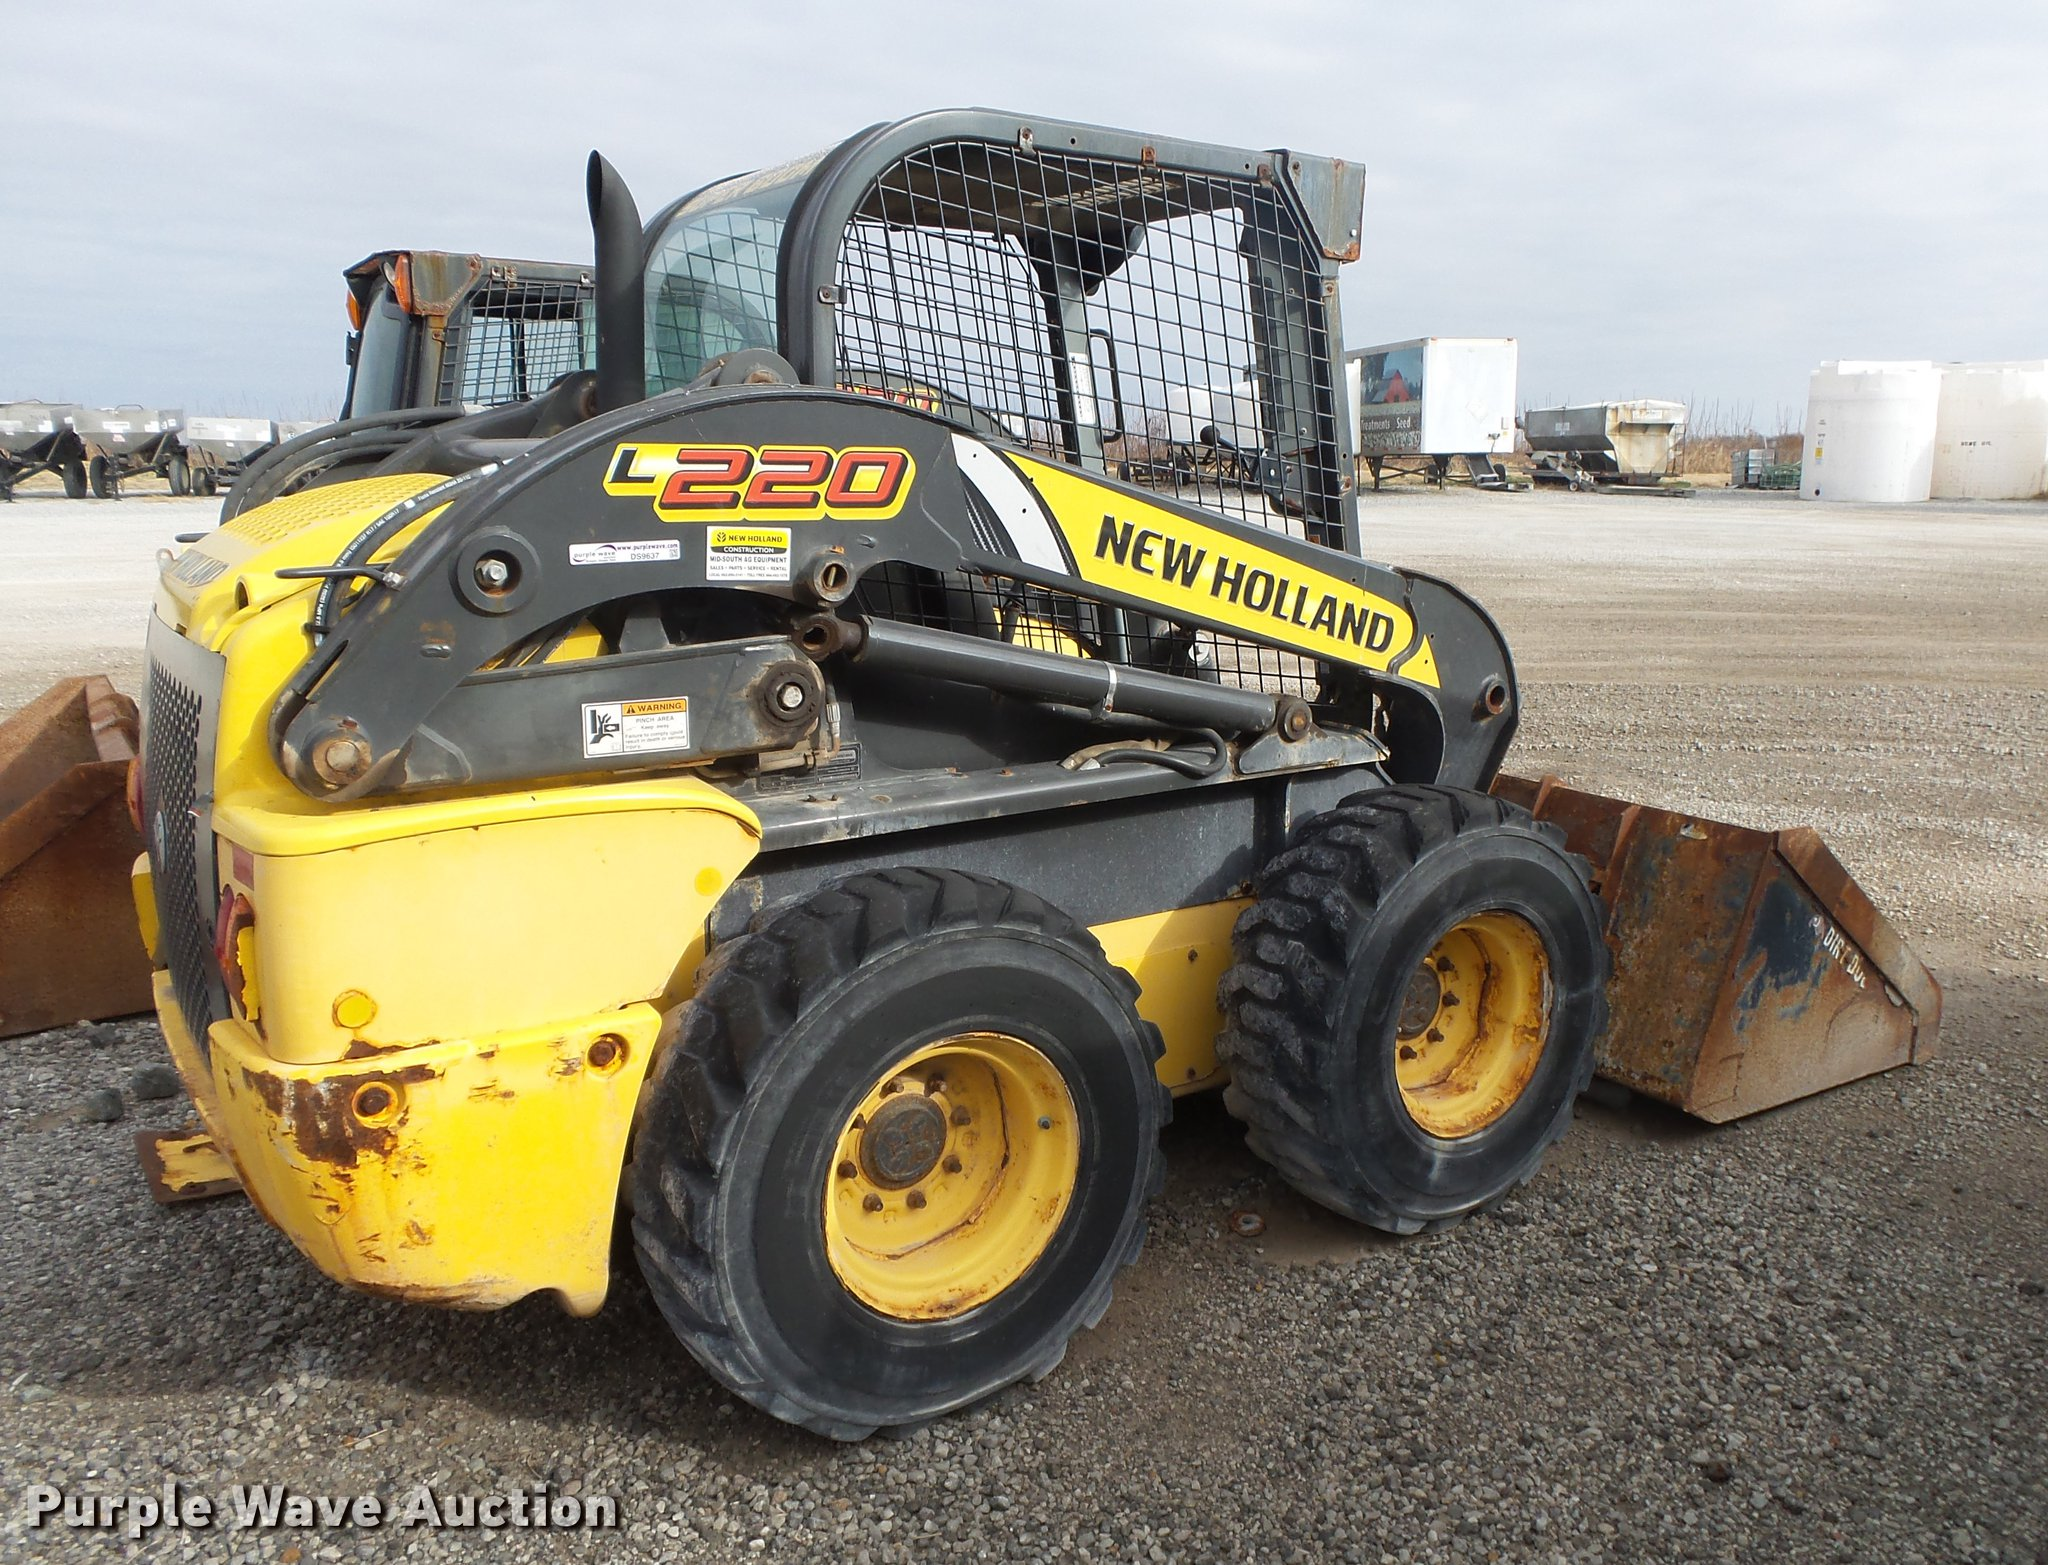 WRG-2562] New Holland L220 Skid Steer Operators Manual